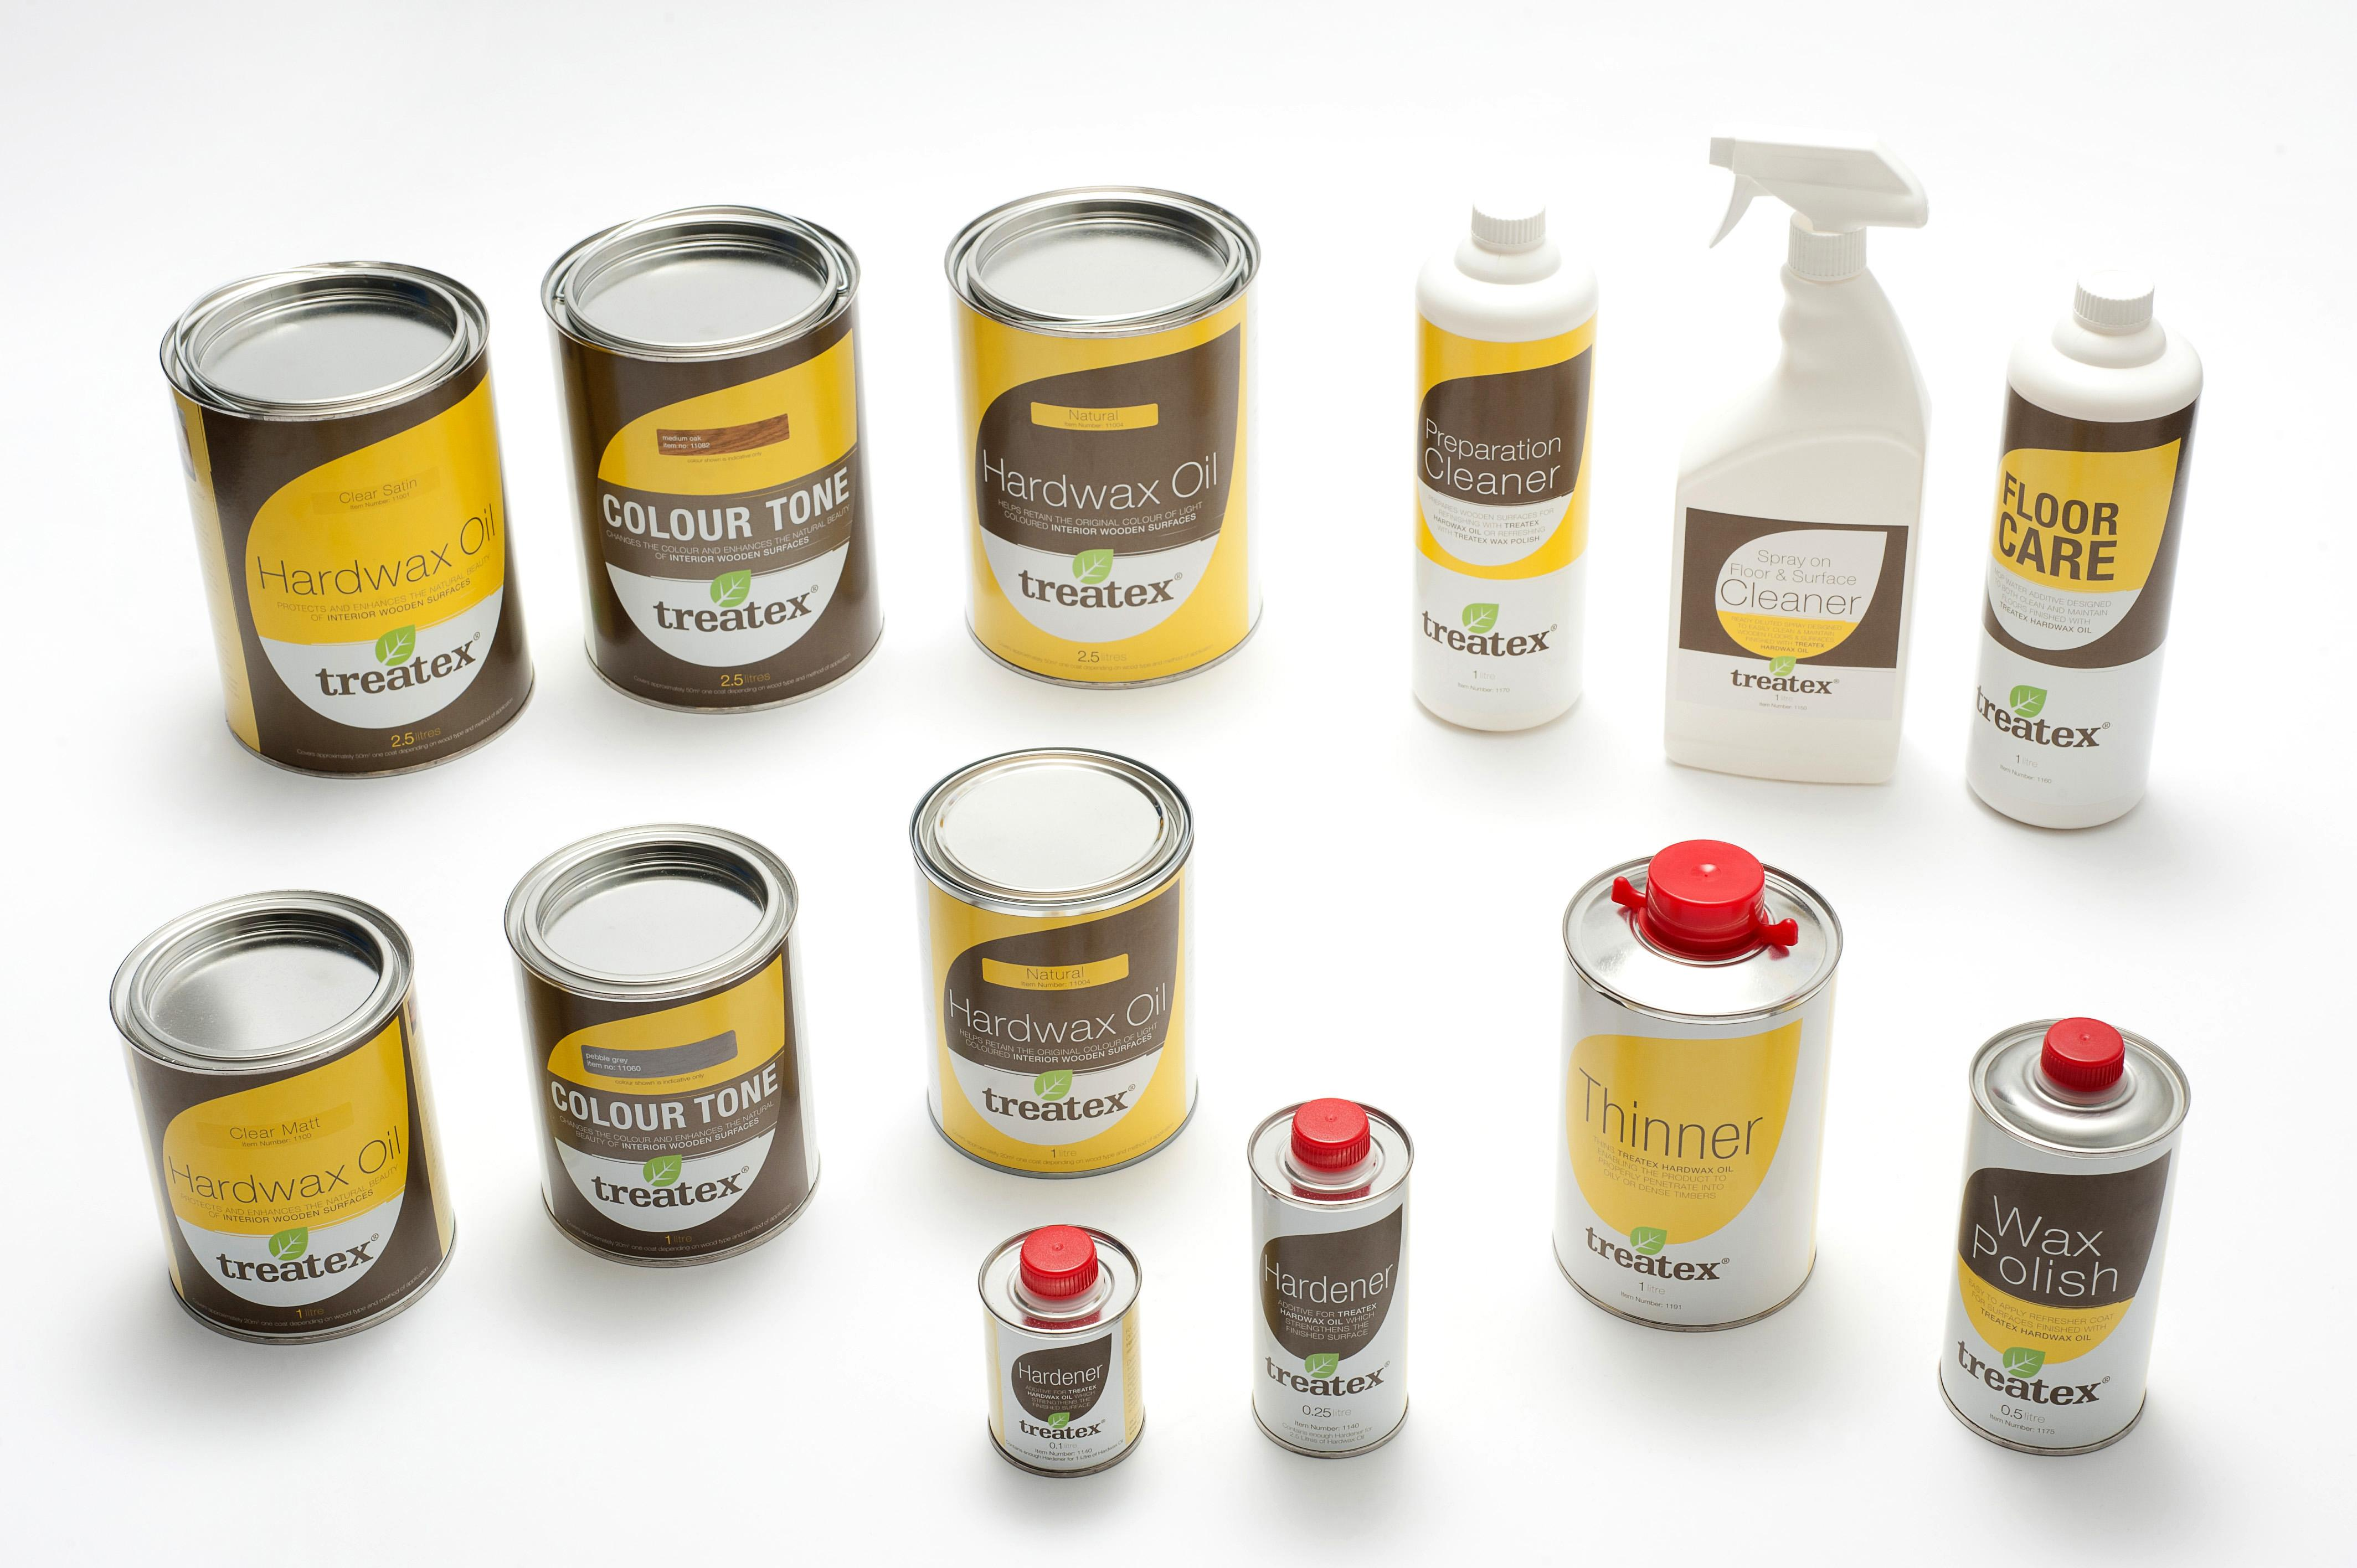 Treatex oil products